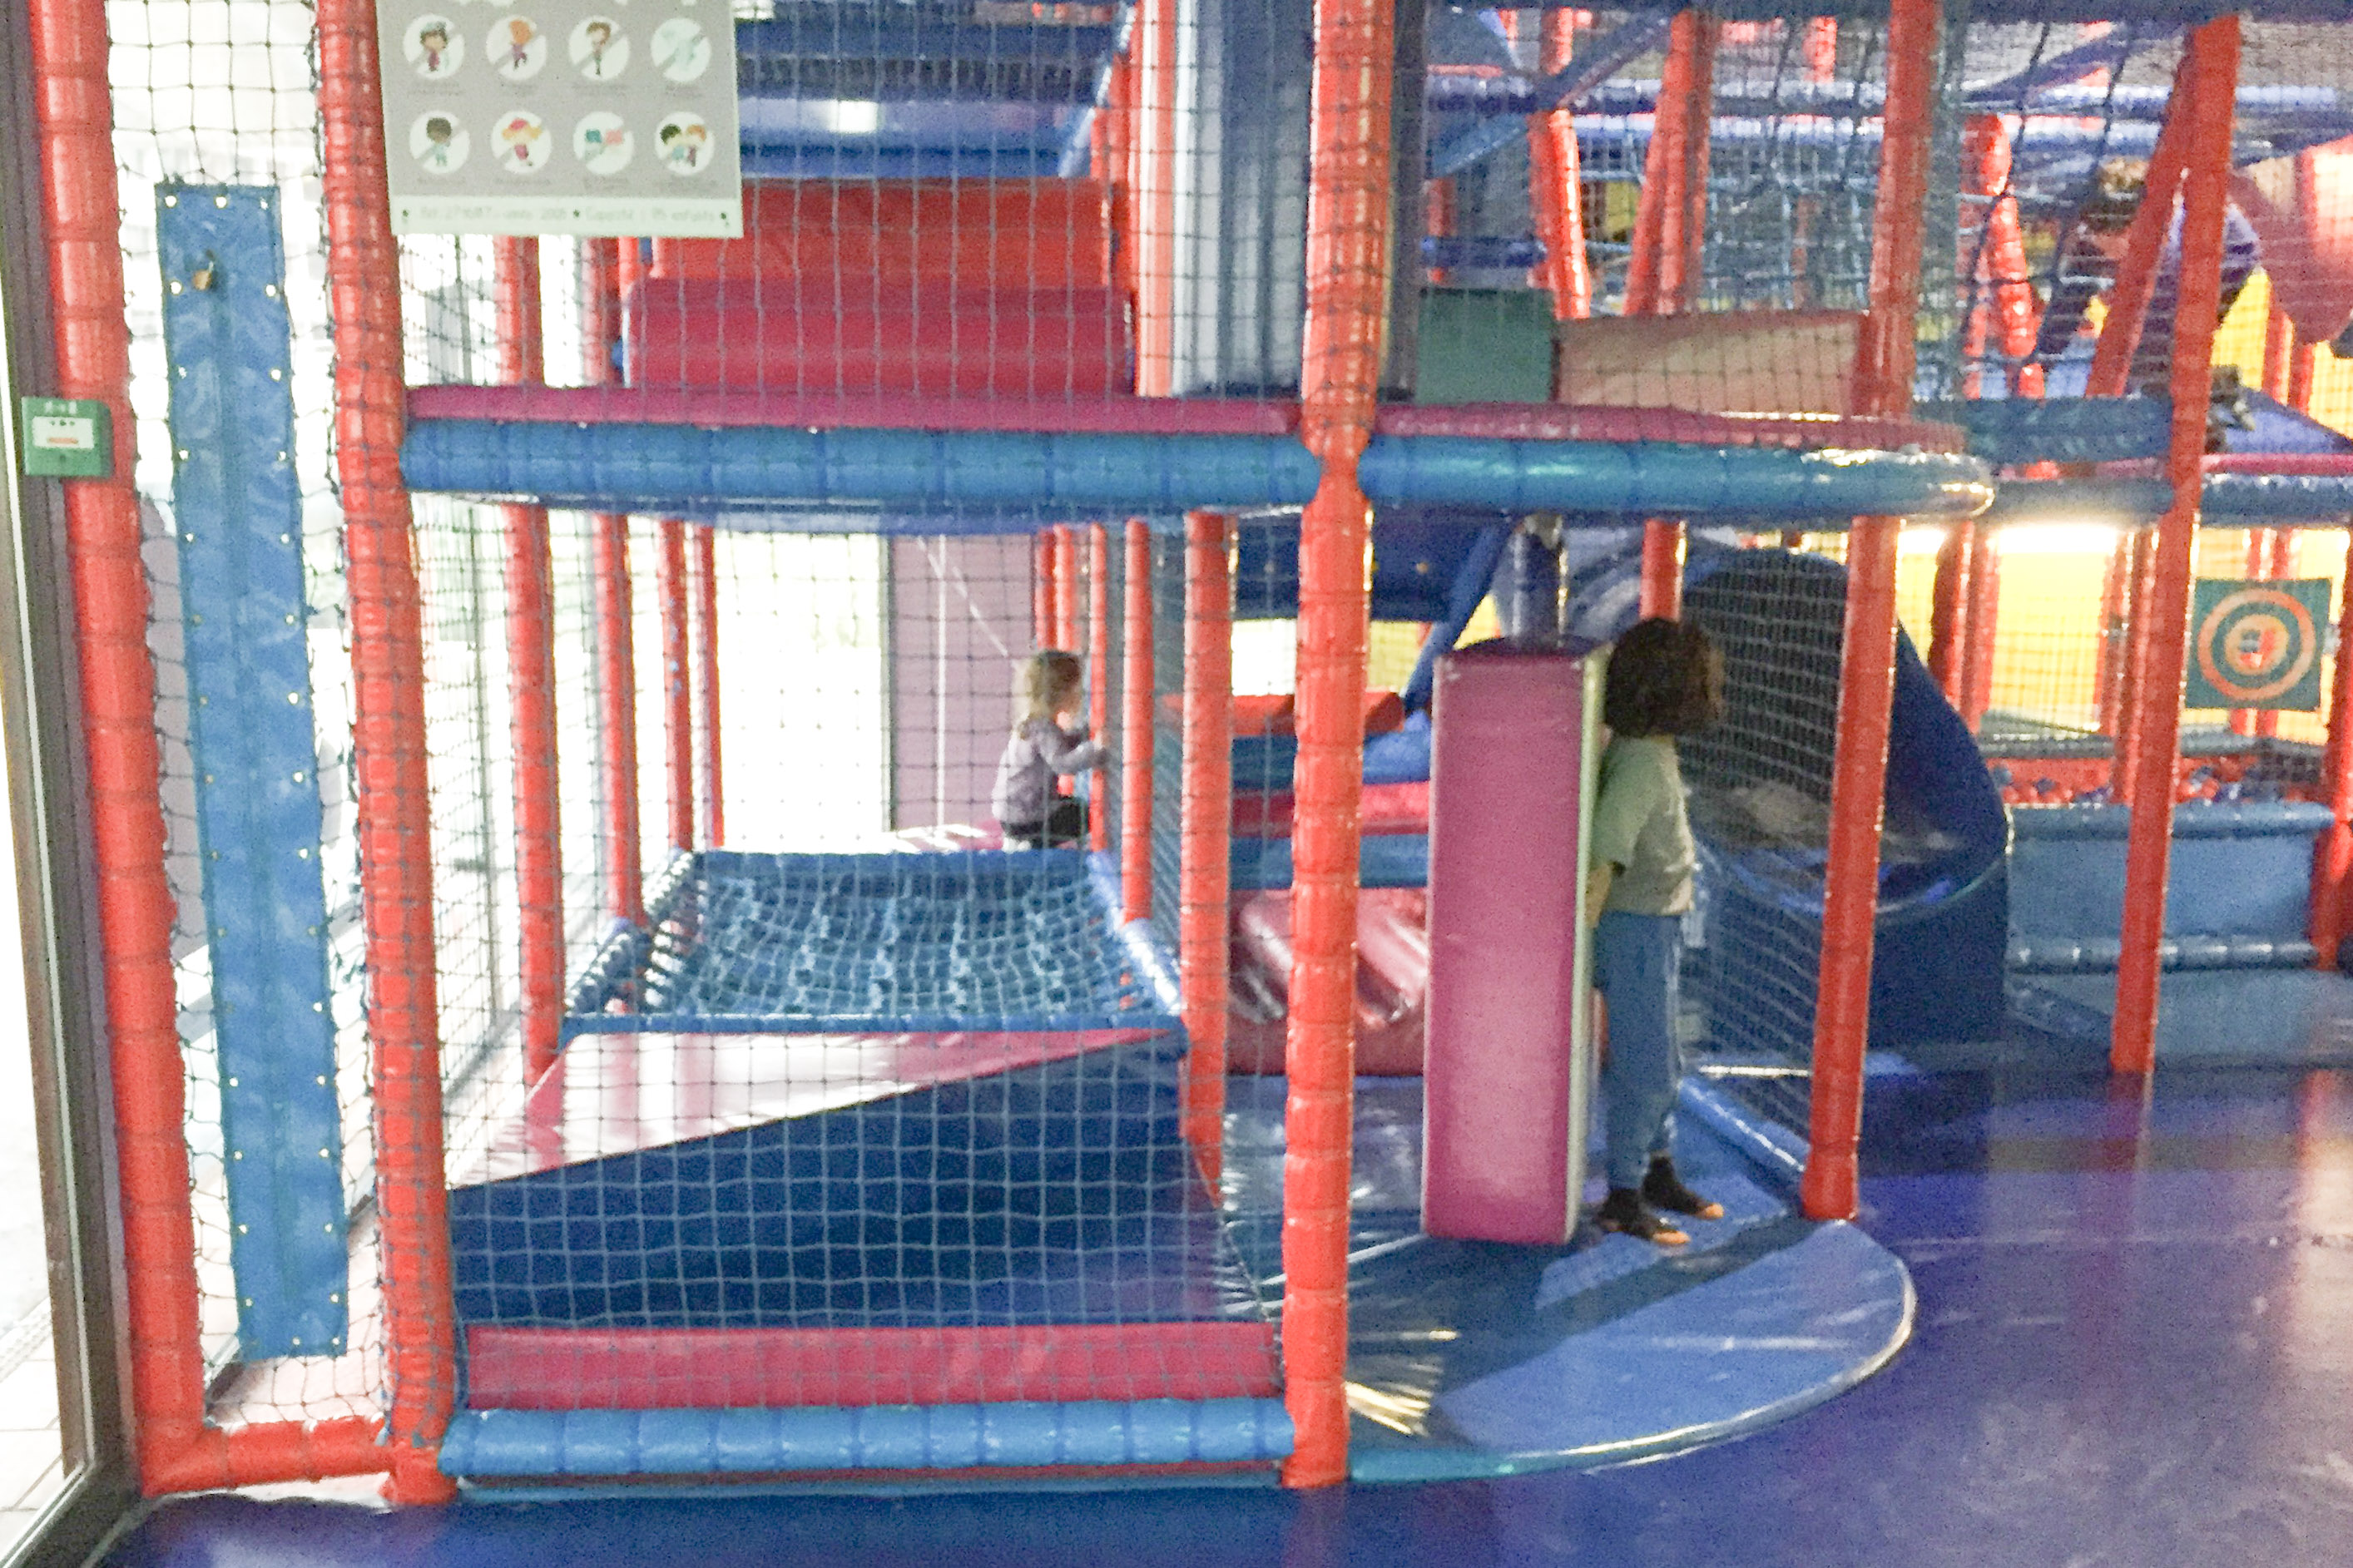 toulouse-cafe-resto-restorant-enfant-kid-parent-famille-maman-papa-bebe-zeplegraounde-the-jeux-boots-and-pepper-structure